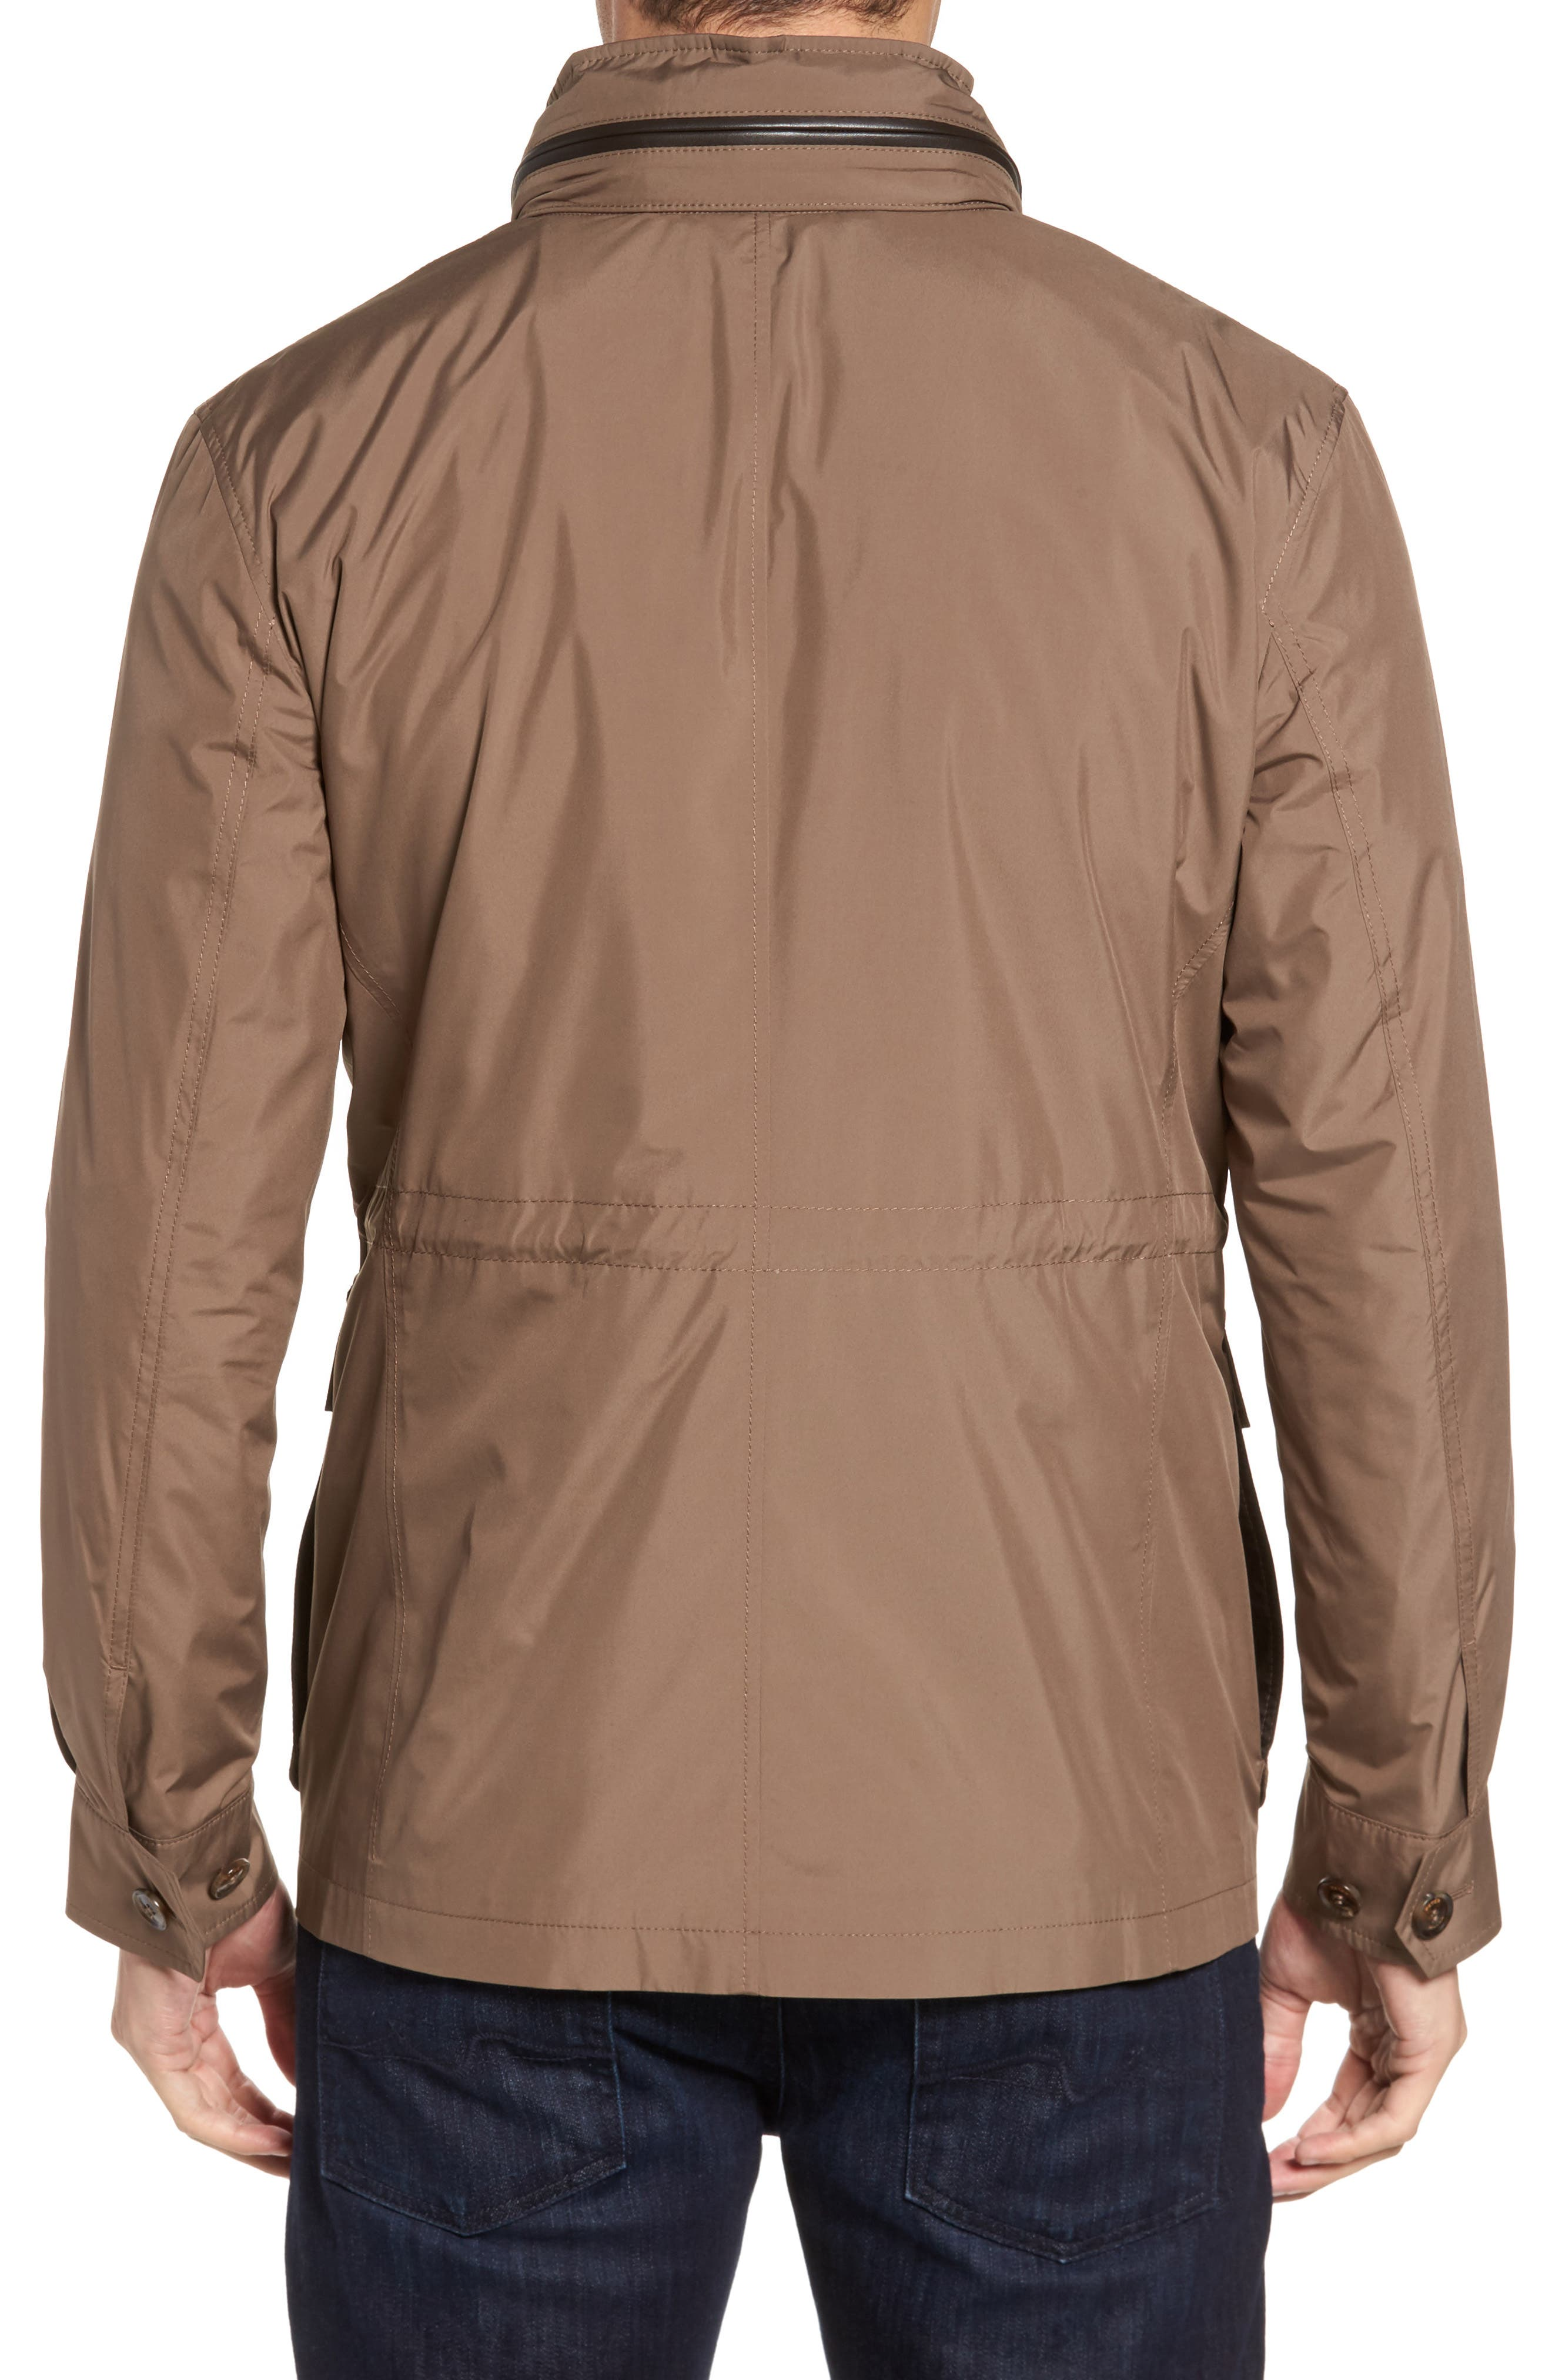 All Weather Discovery Jacket,                             Alternate thumbnail 2, color,                             Dune Surf